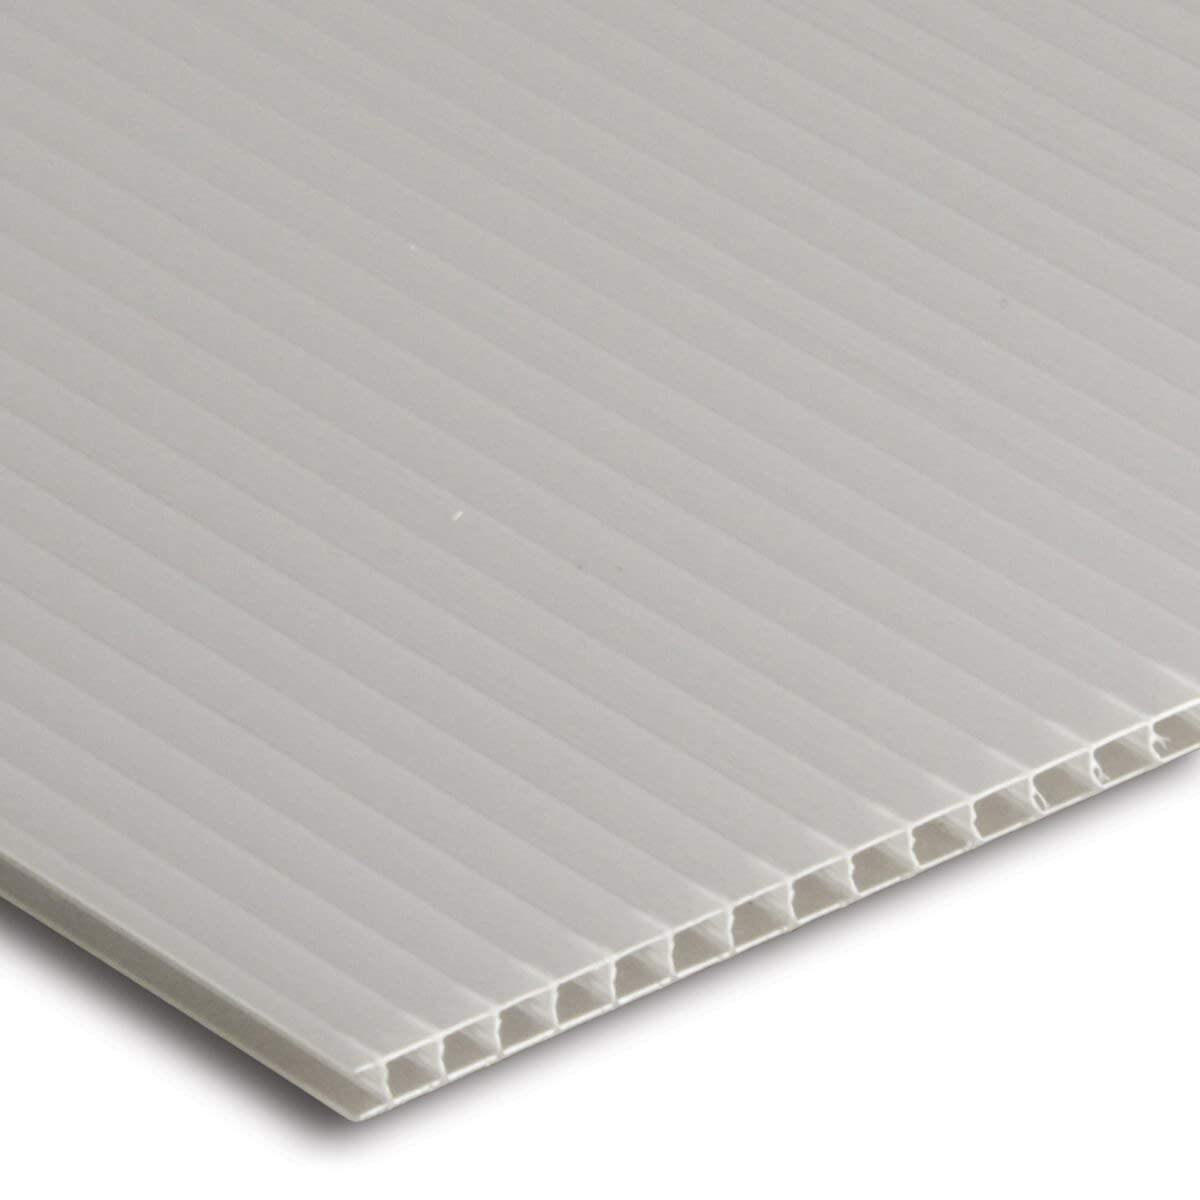 White Fluted Correx Outdoor Plastic Board. 3 Sheets Sized to A1 (841x594mm) Vesey Gallery